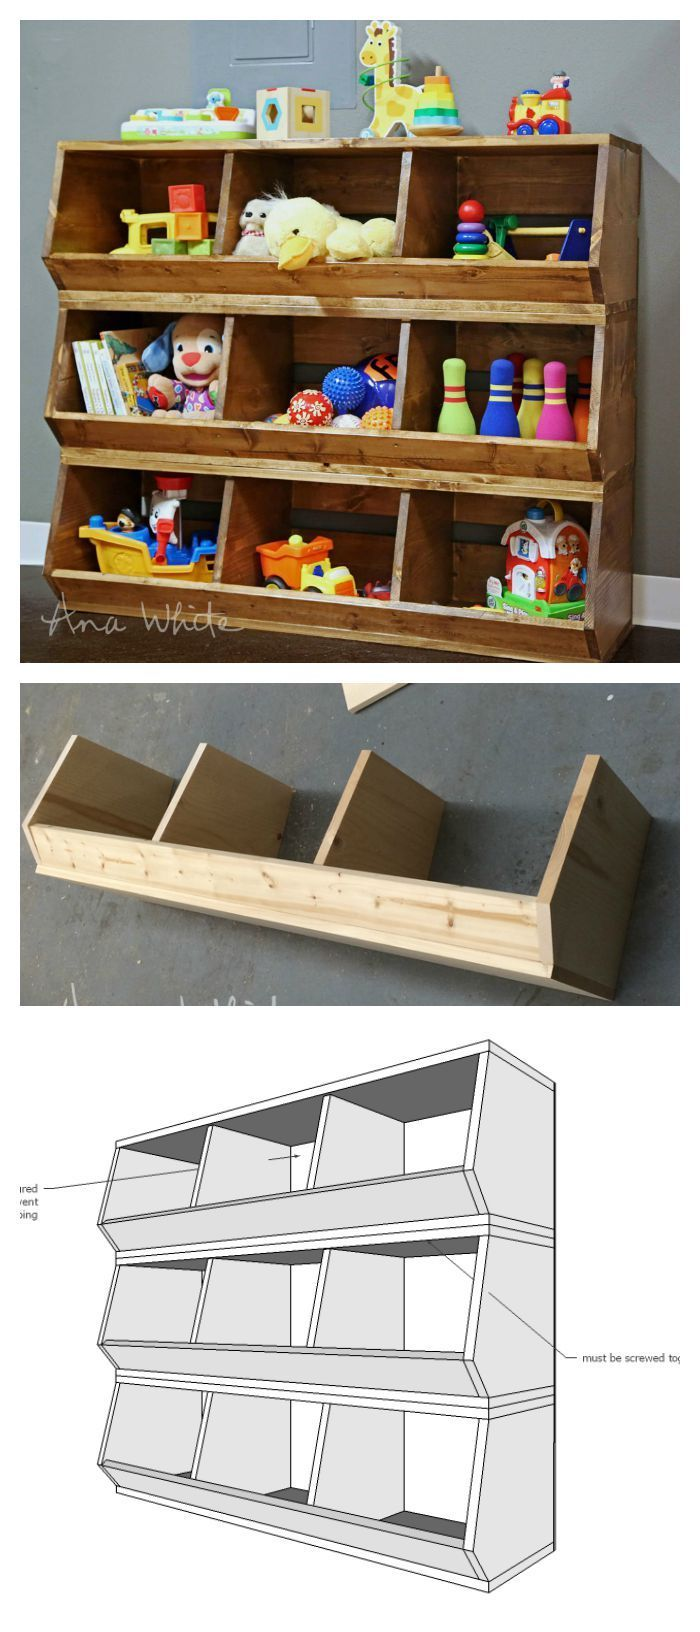 Table success do it yourself home projects from ana white diy 85 - Build These Wood Bulk Bins Out Of Boards Perfect Diy Storage For Your Kids Playroom